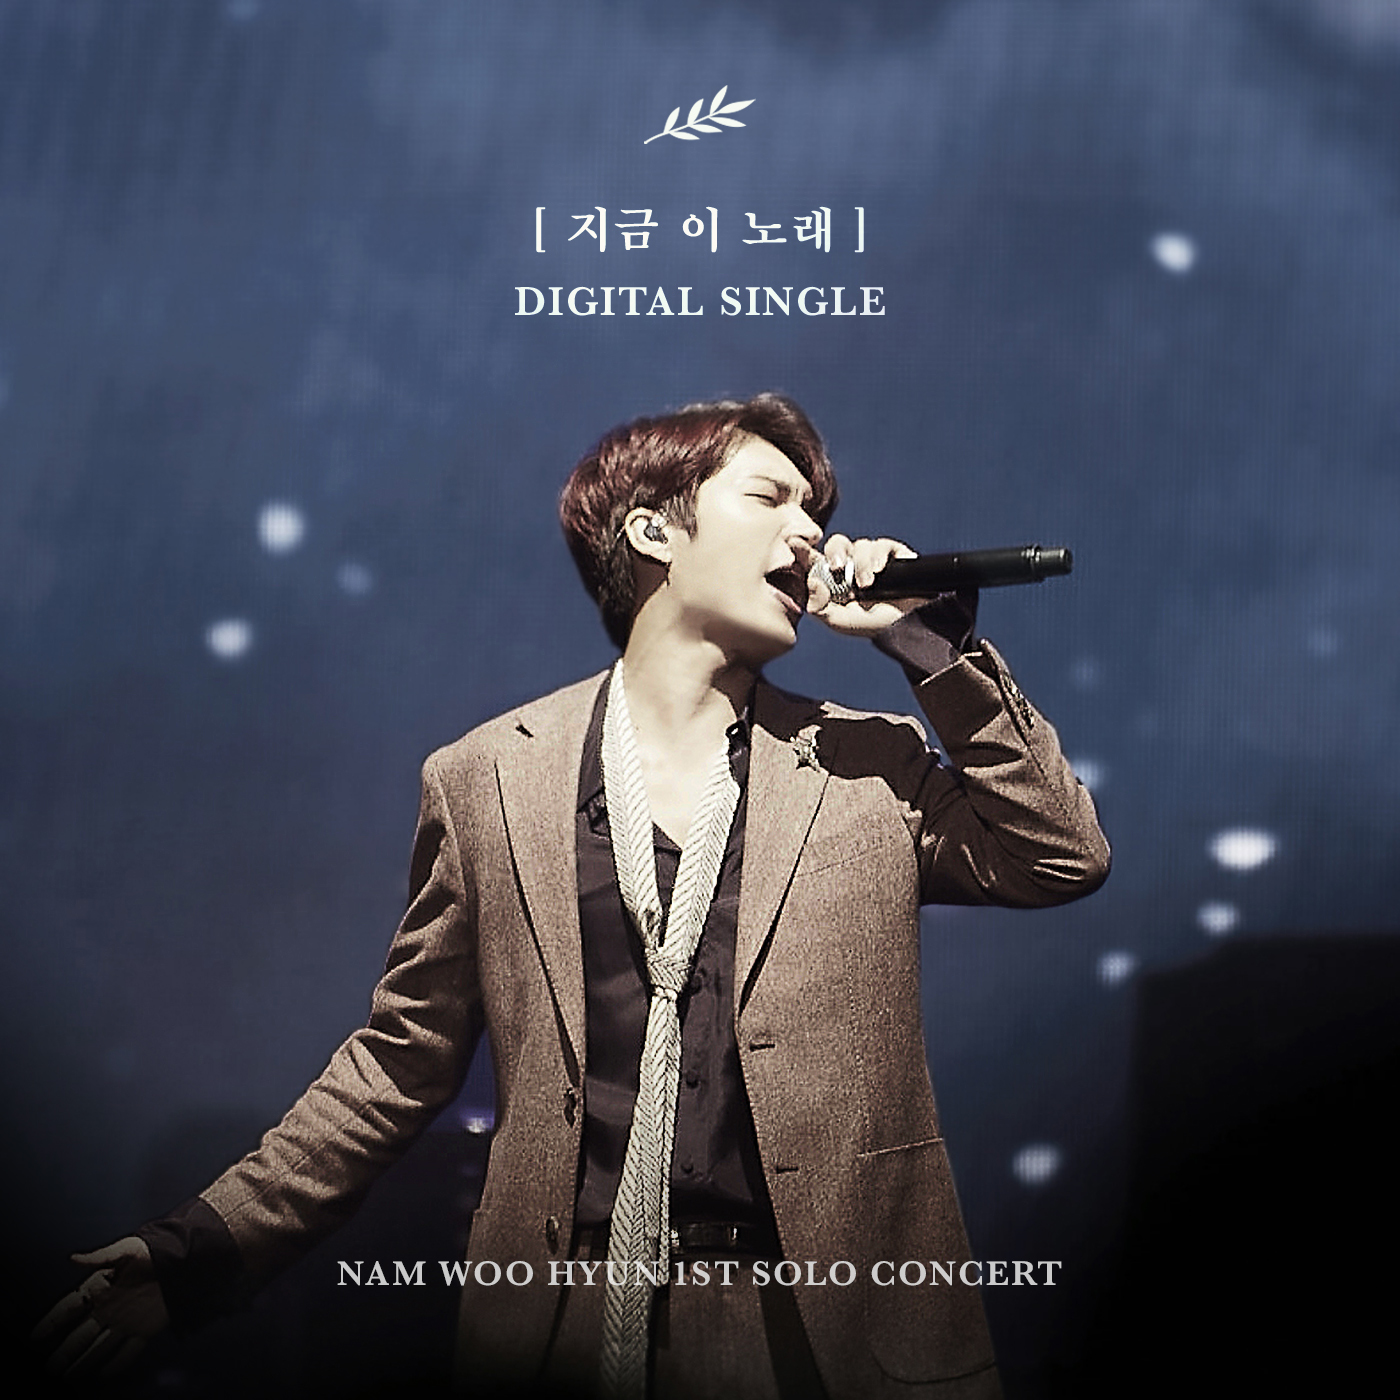 A Song For You (Nam Woo Hyun)